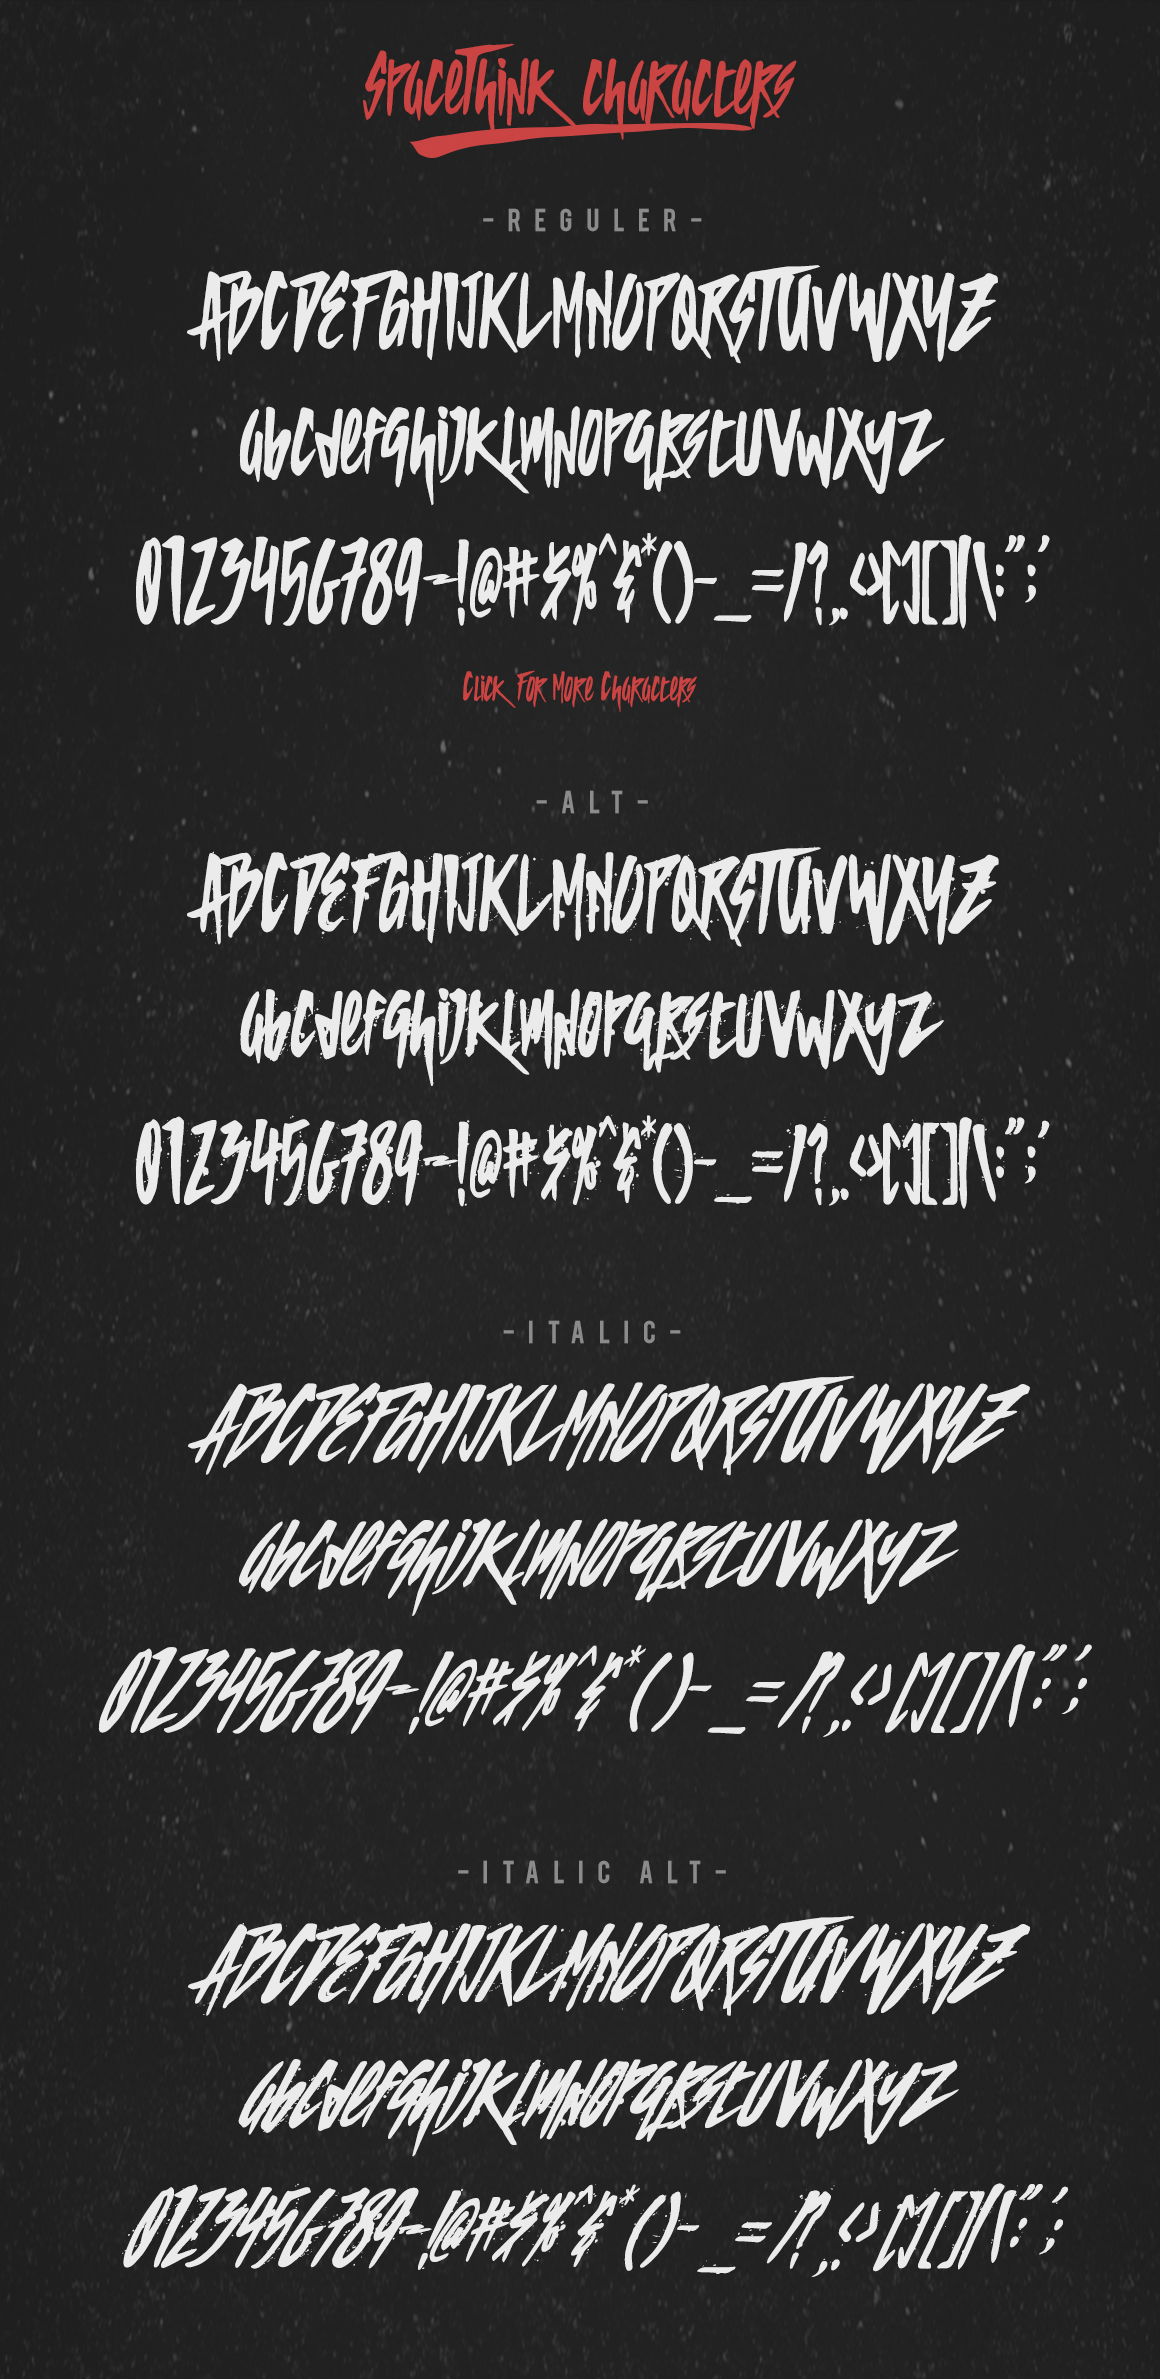 SPACETHINK Typeface example image 2